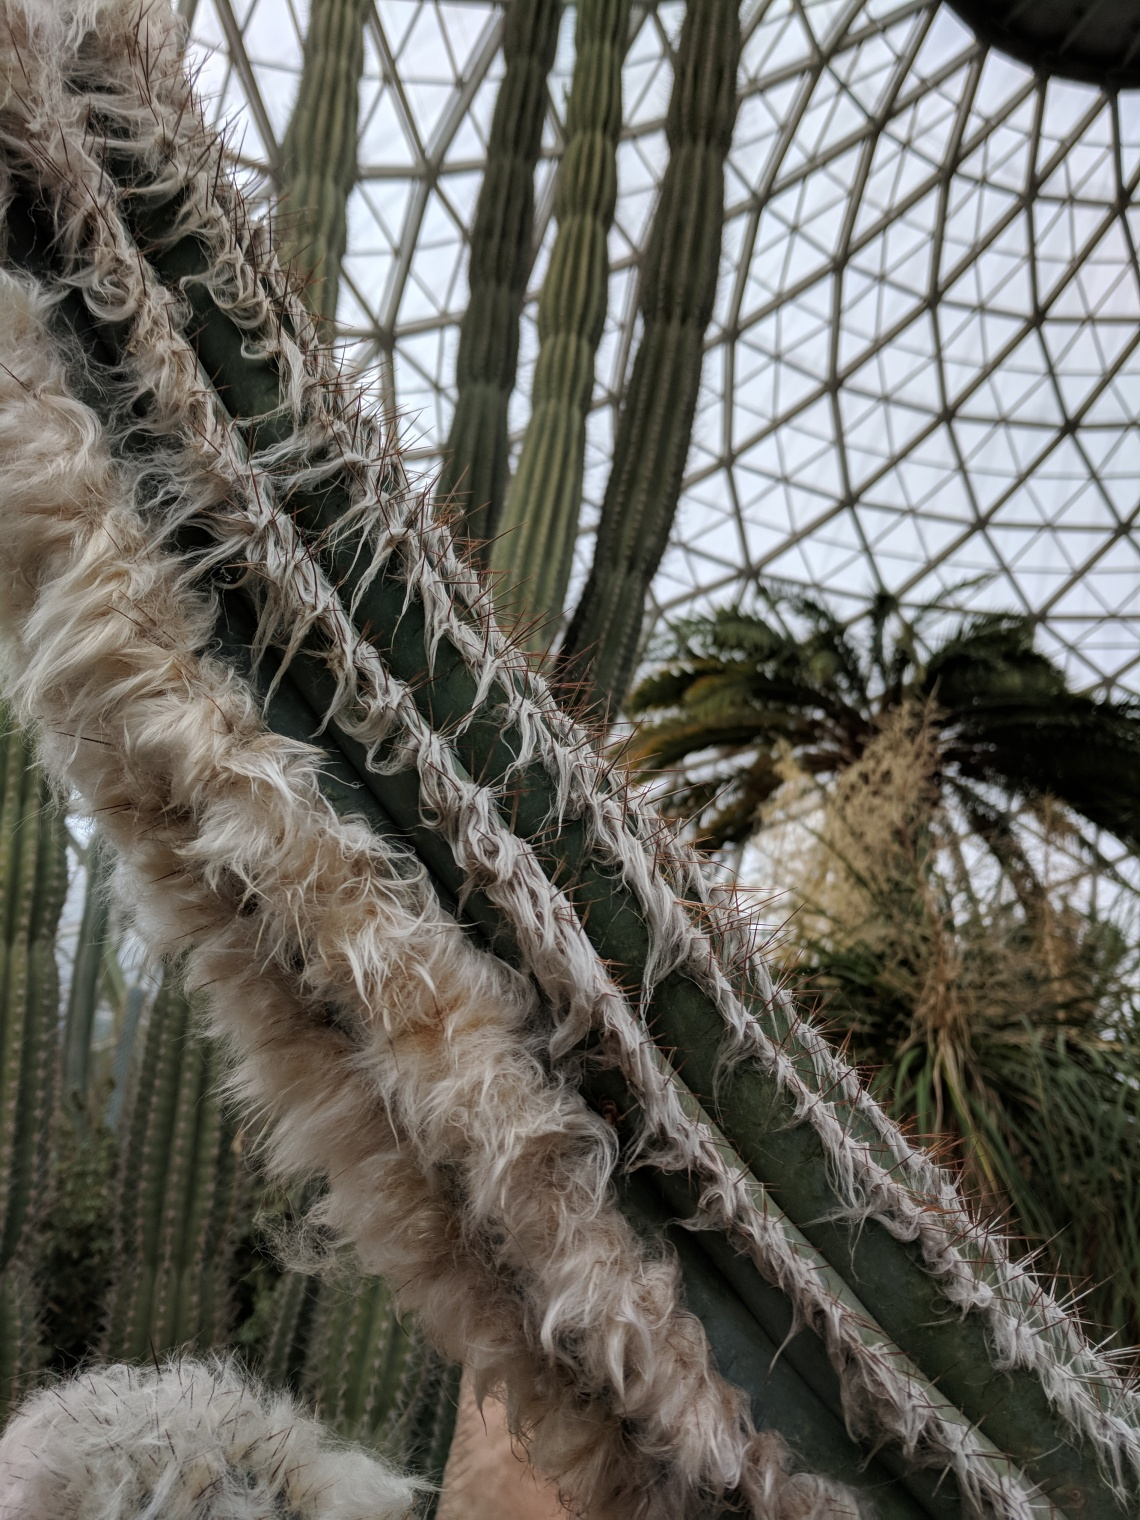 Furry cactus and ceiling